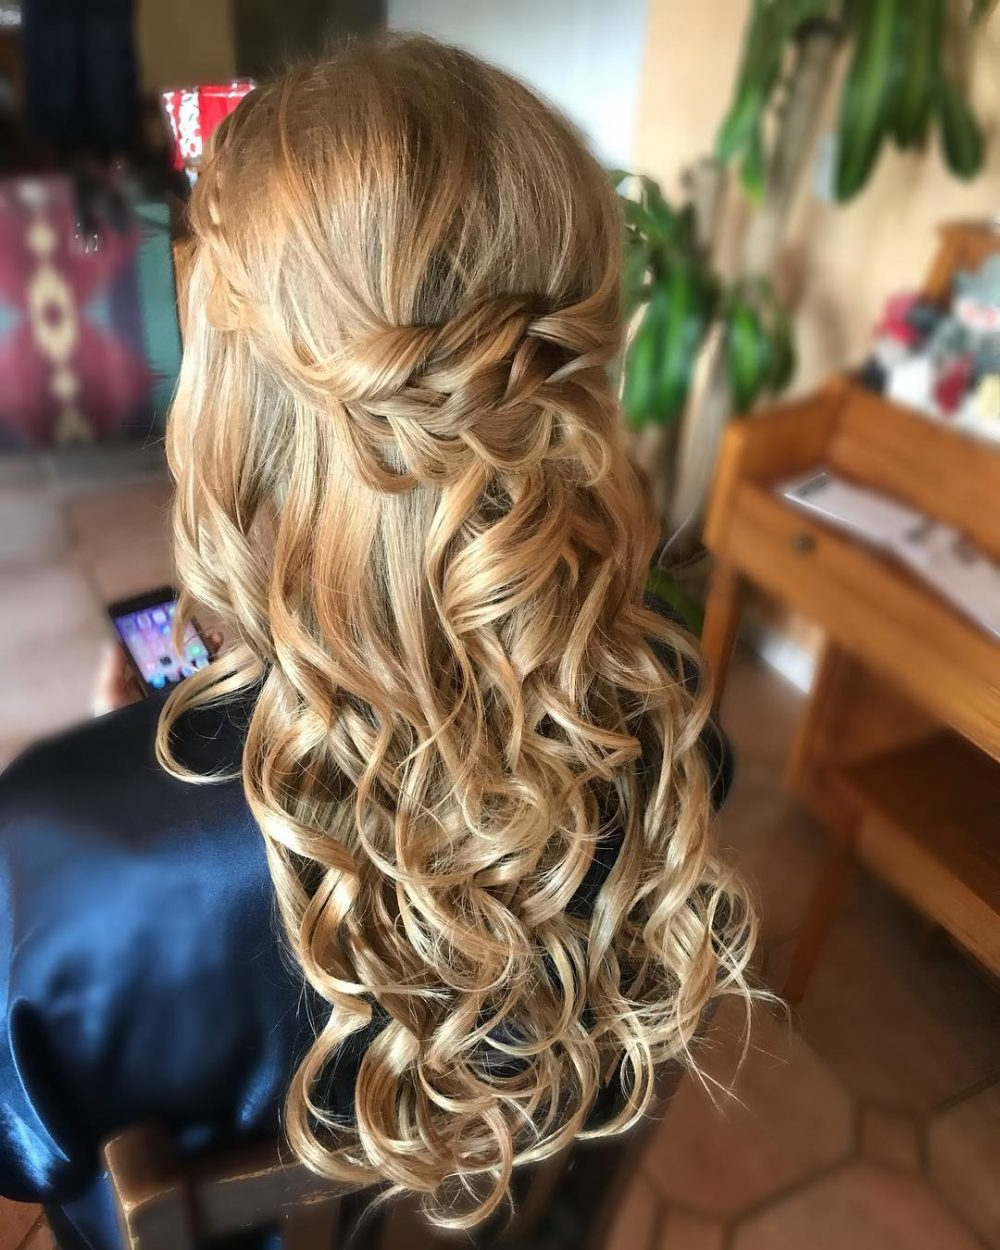 24 Gorgeous Wedding Hairstyles For Long Hair In 2019 Throughout 2017 Tied Back Ombre Curls Bridal Hairstyles (View 9 of 20)